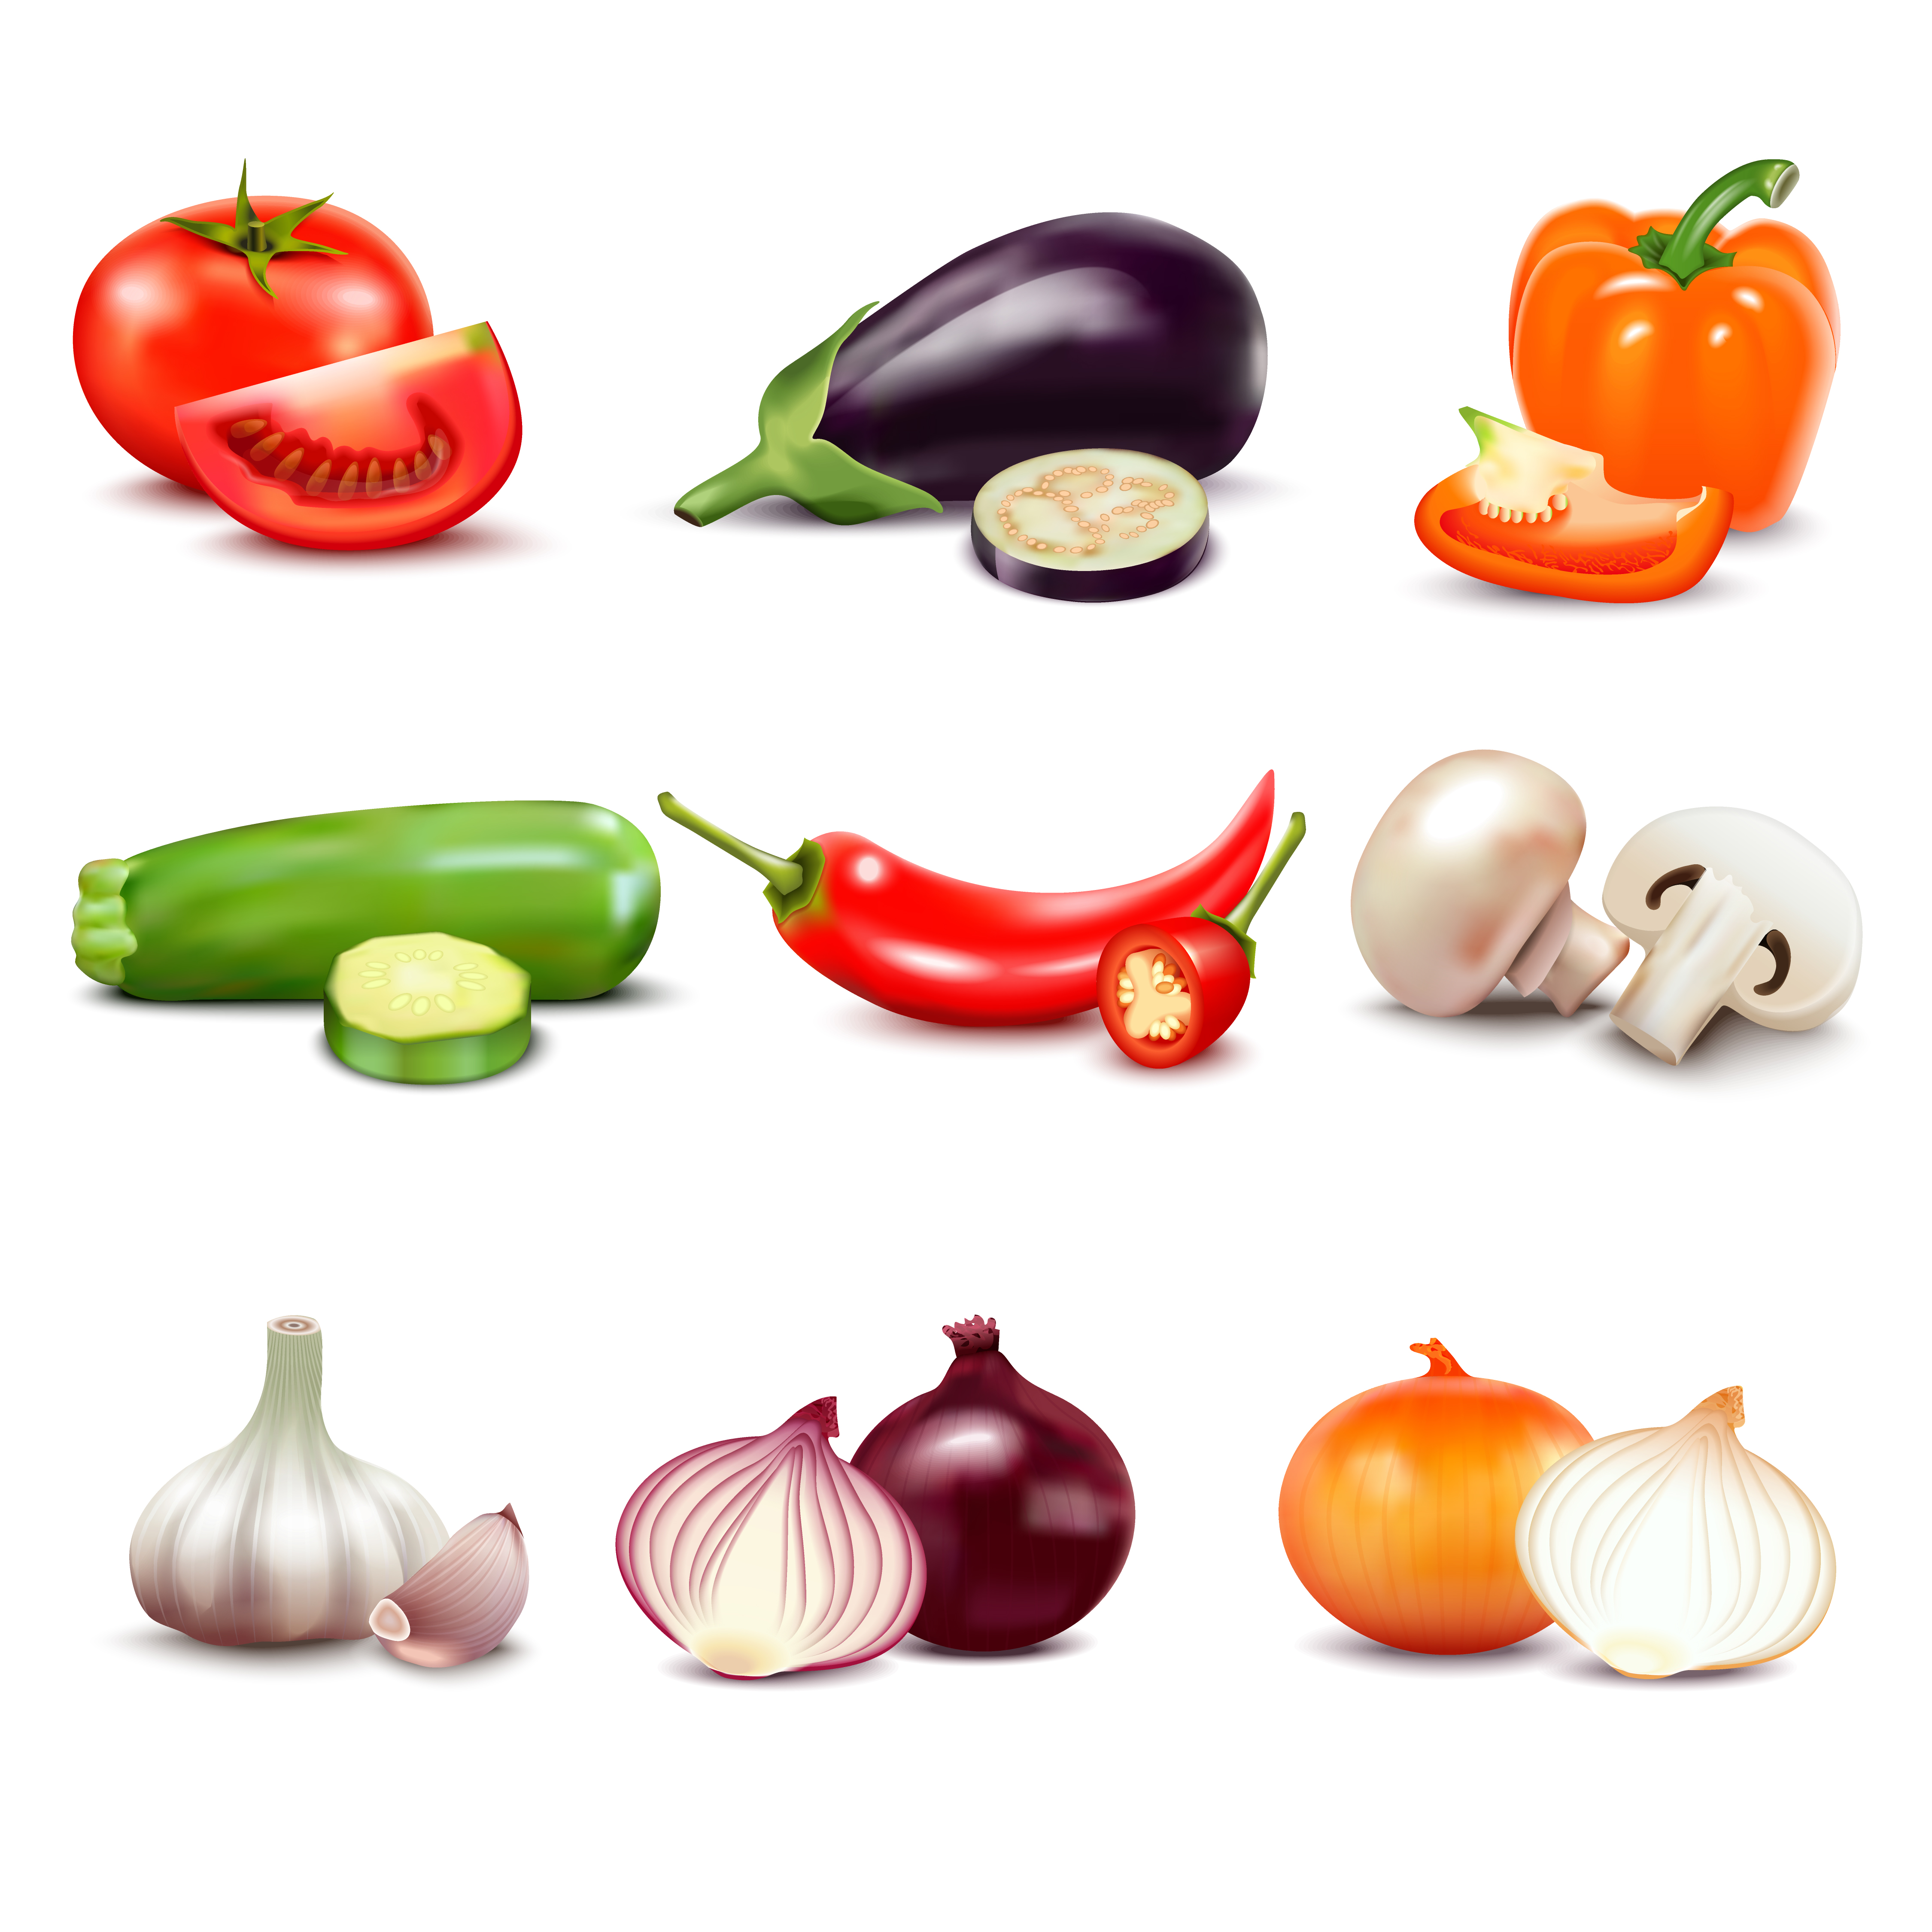 Raw Vegetables Isolated Icons - Download Free Vectors ...